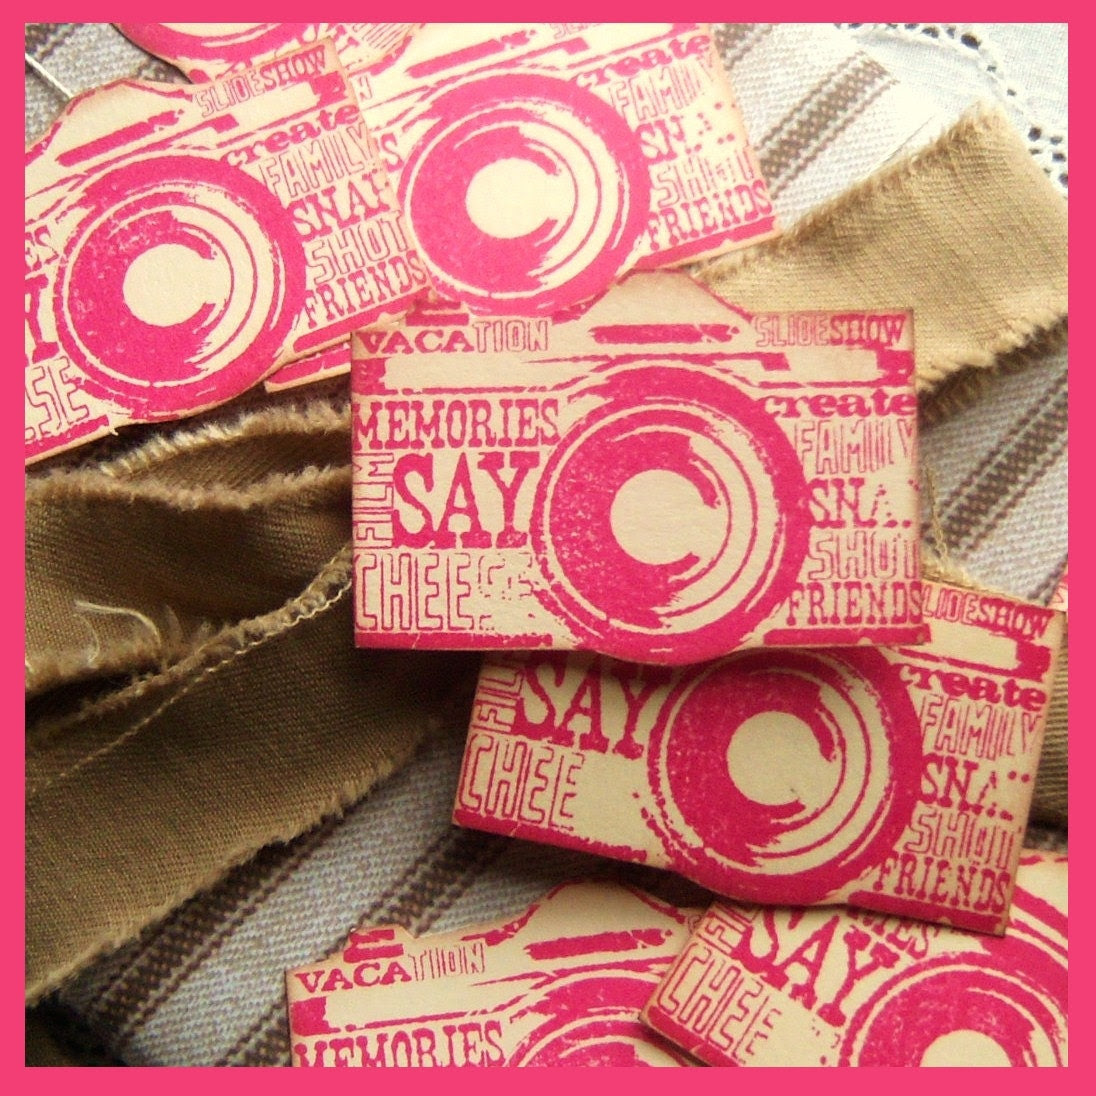 Camera Embellishments, Shaped, Smile, Pink, Red, Subway Art Inspired with Text